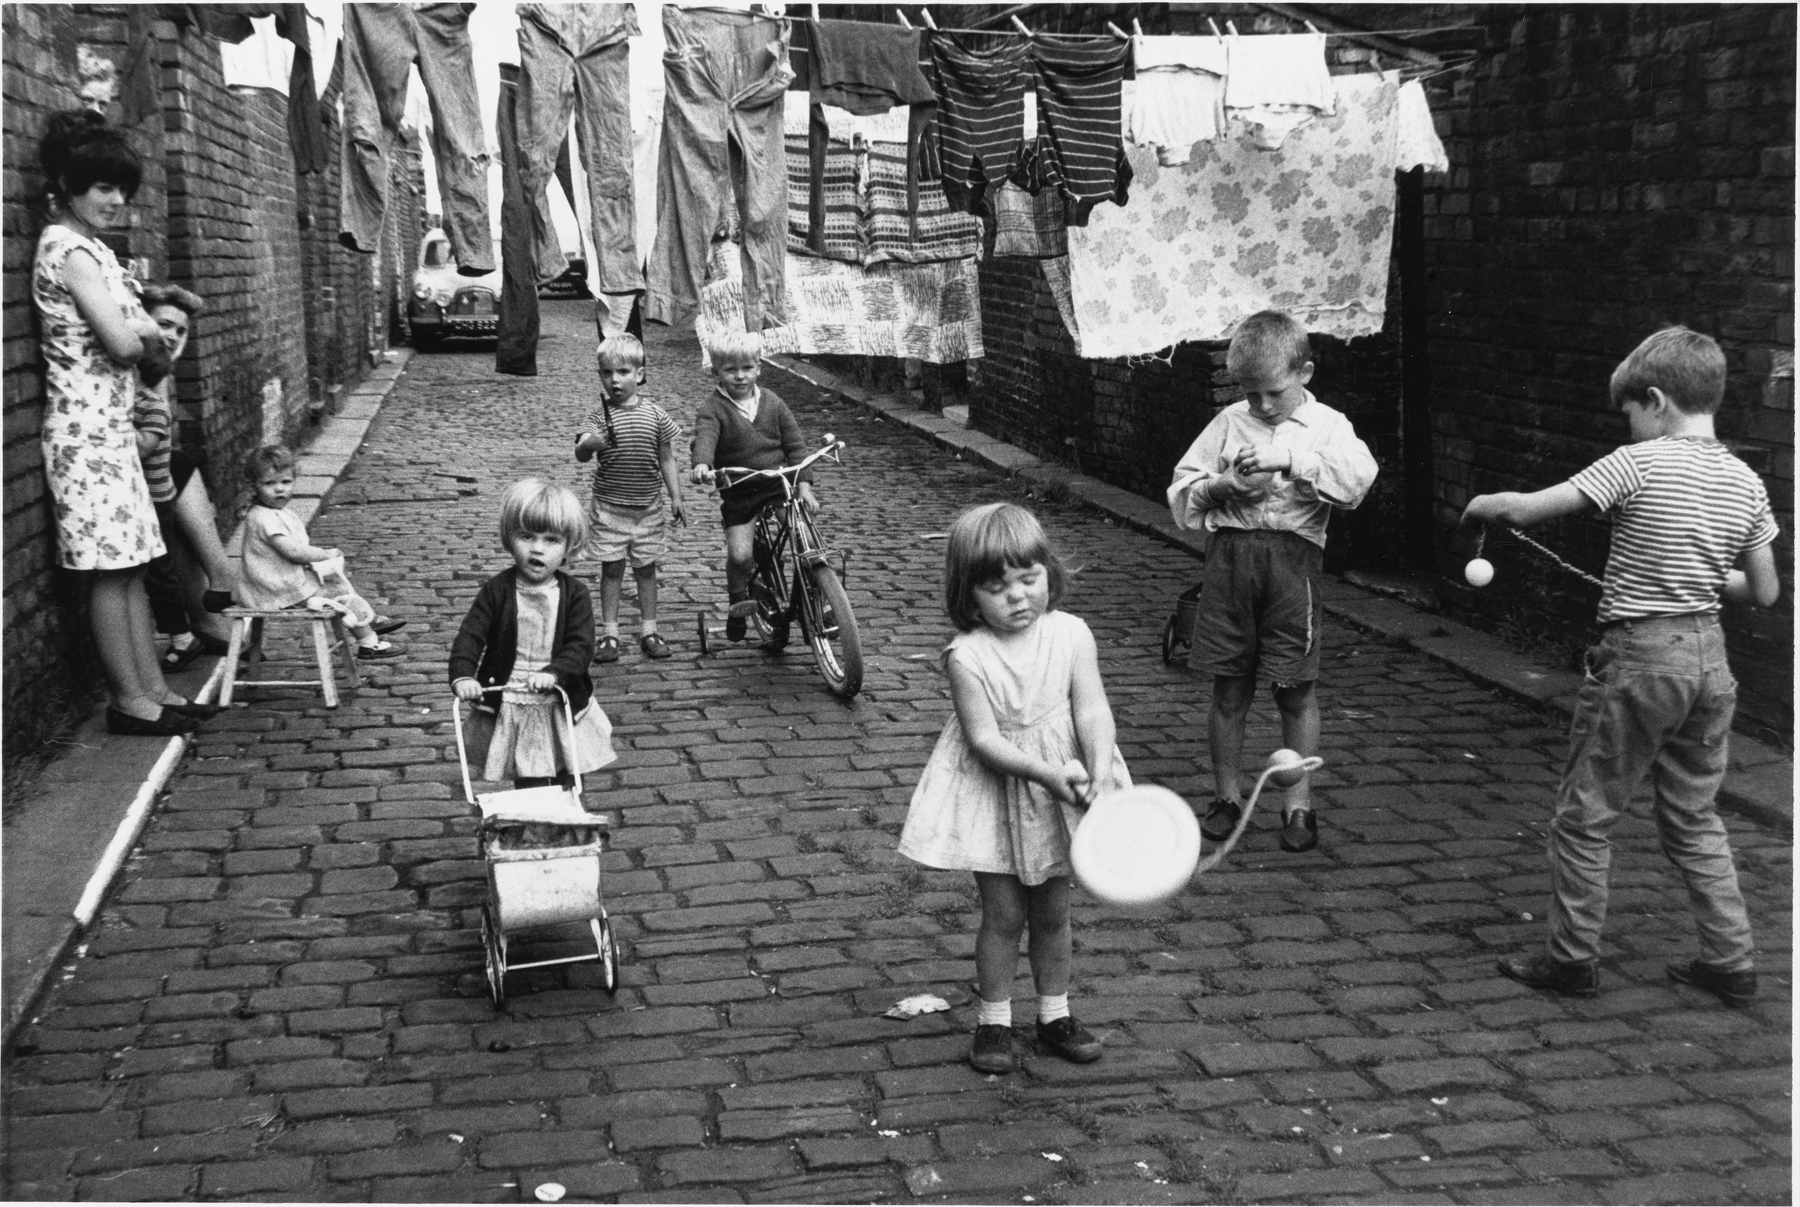 Manchester 1966 © Estate of Shirley Baker. Courtesy of The Photographers' Gallery